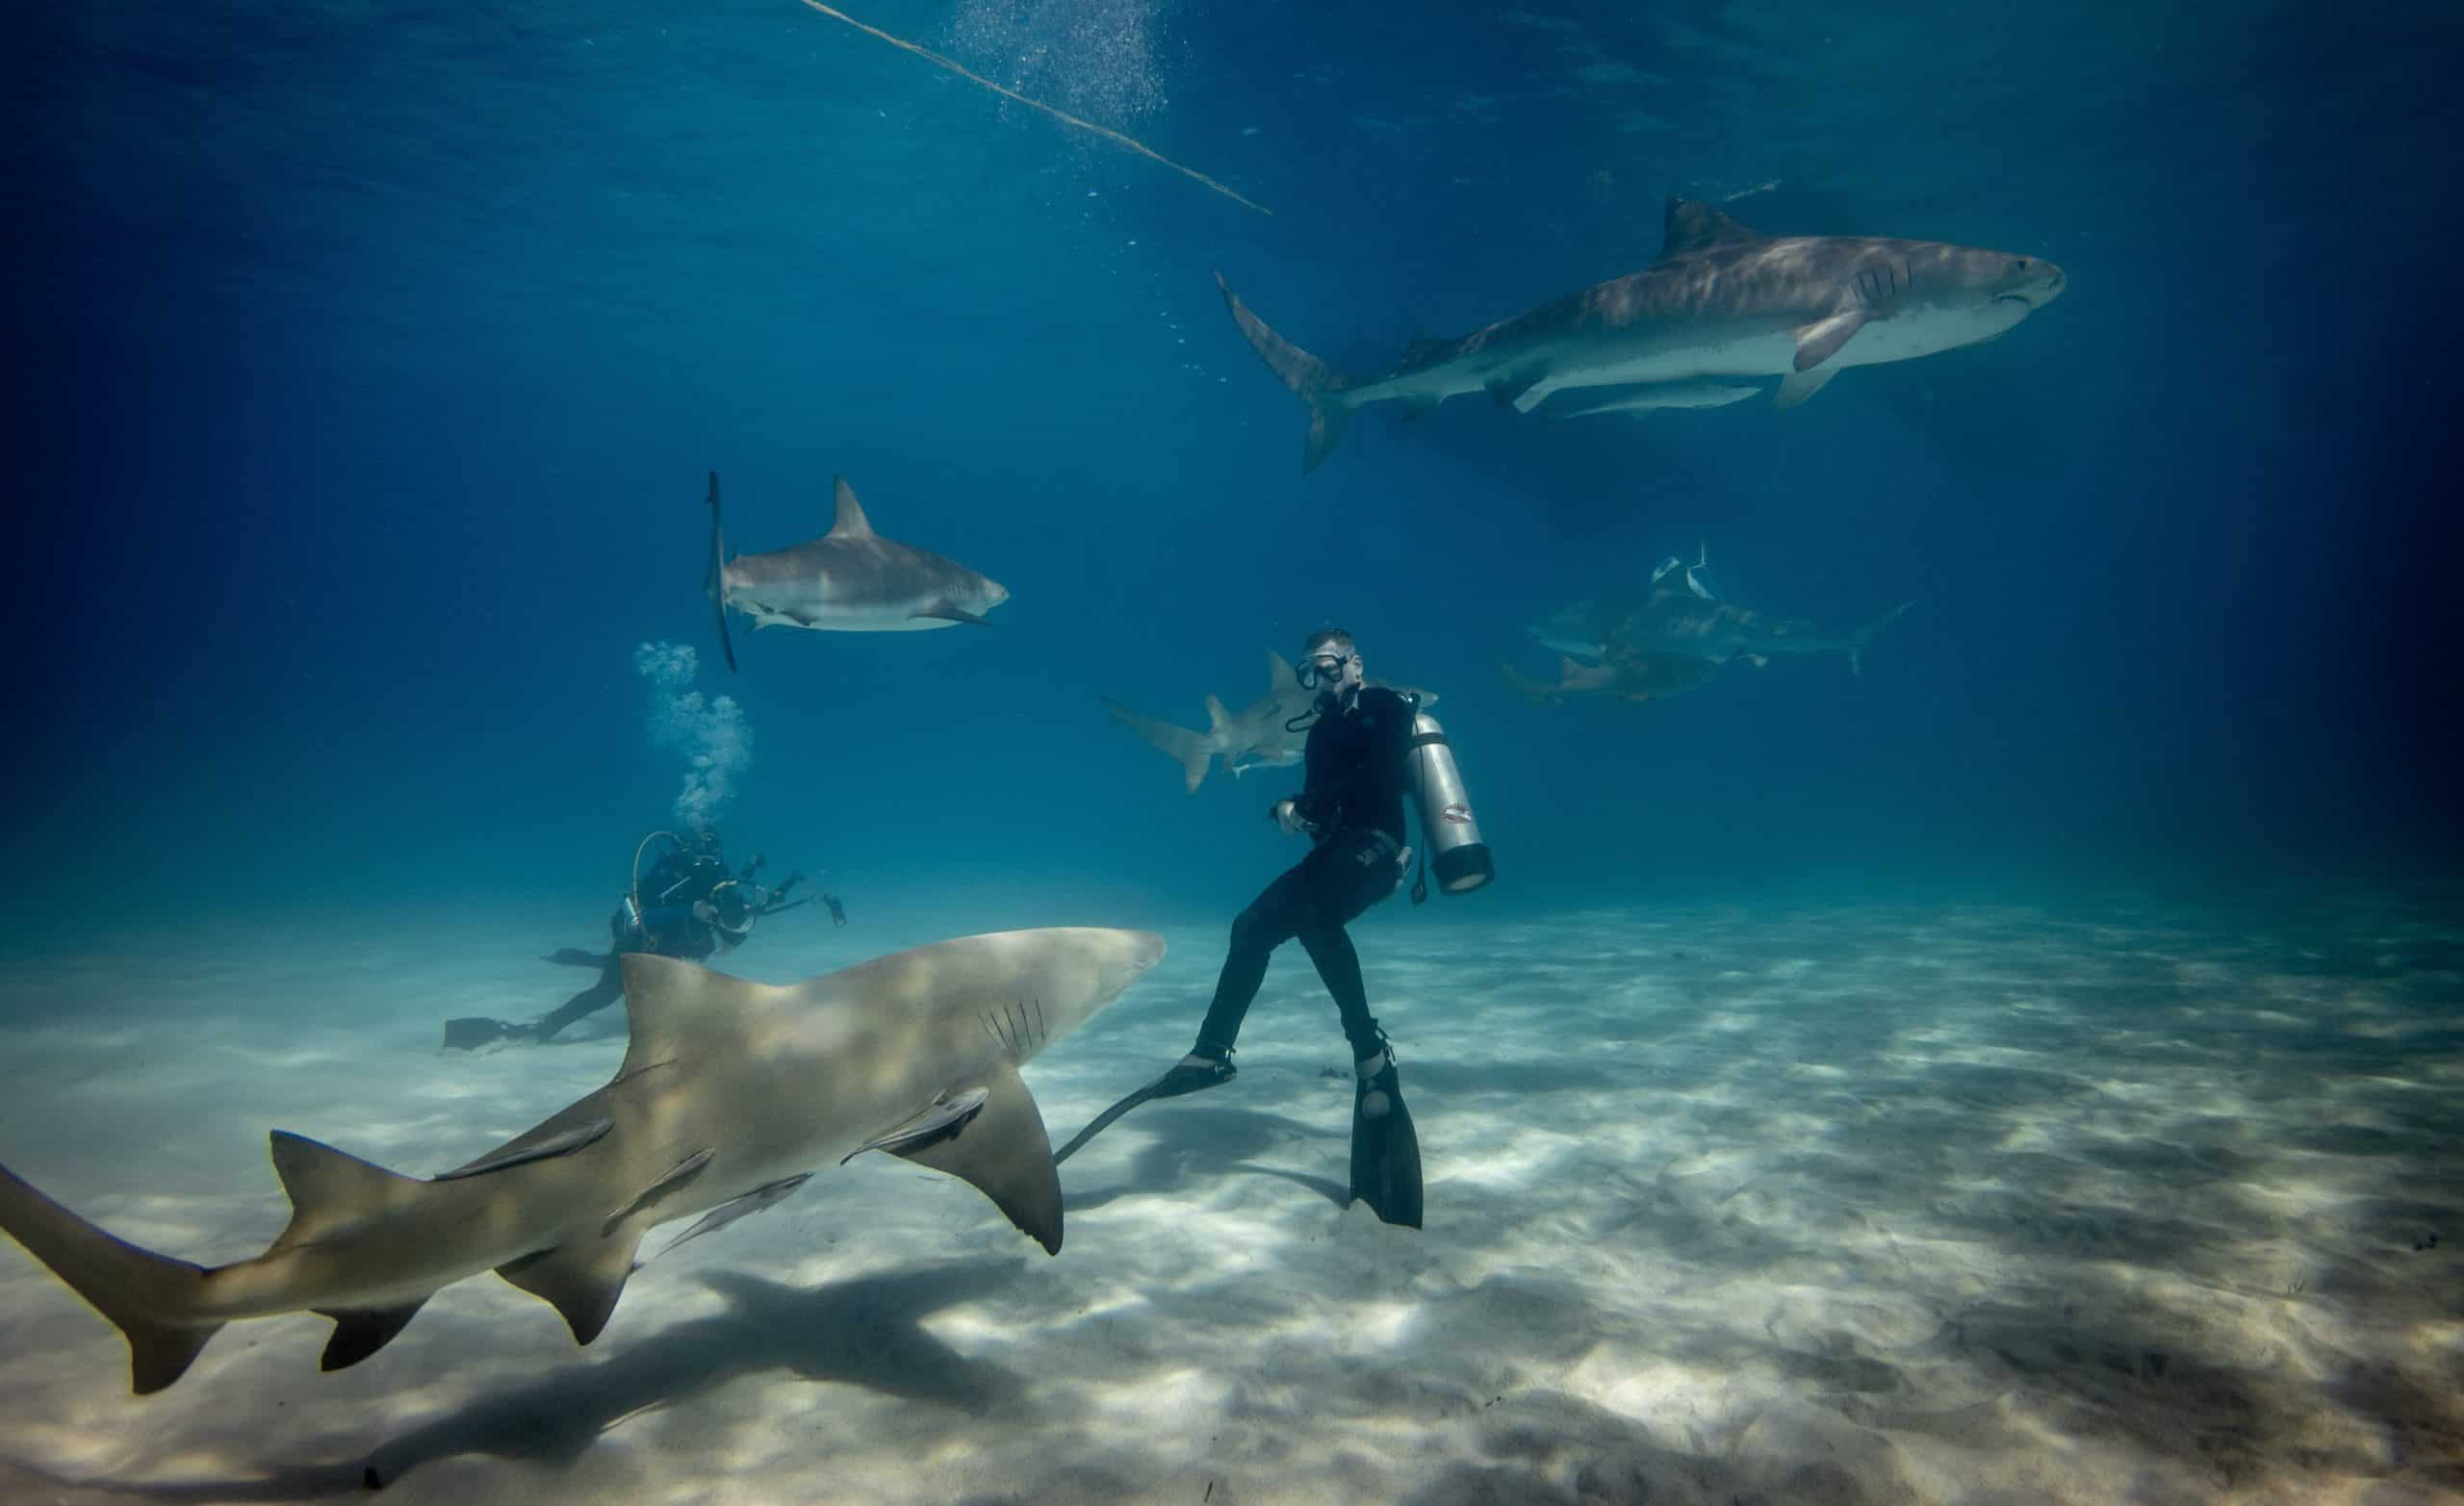 Shark Diving: Best 8 Spots In The World To Encounter Sharks